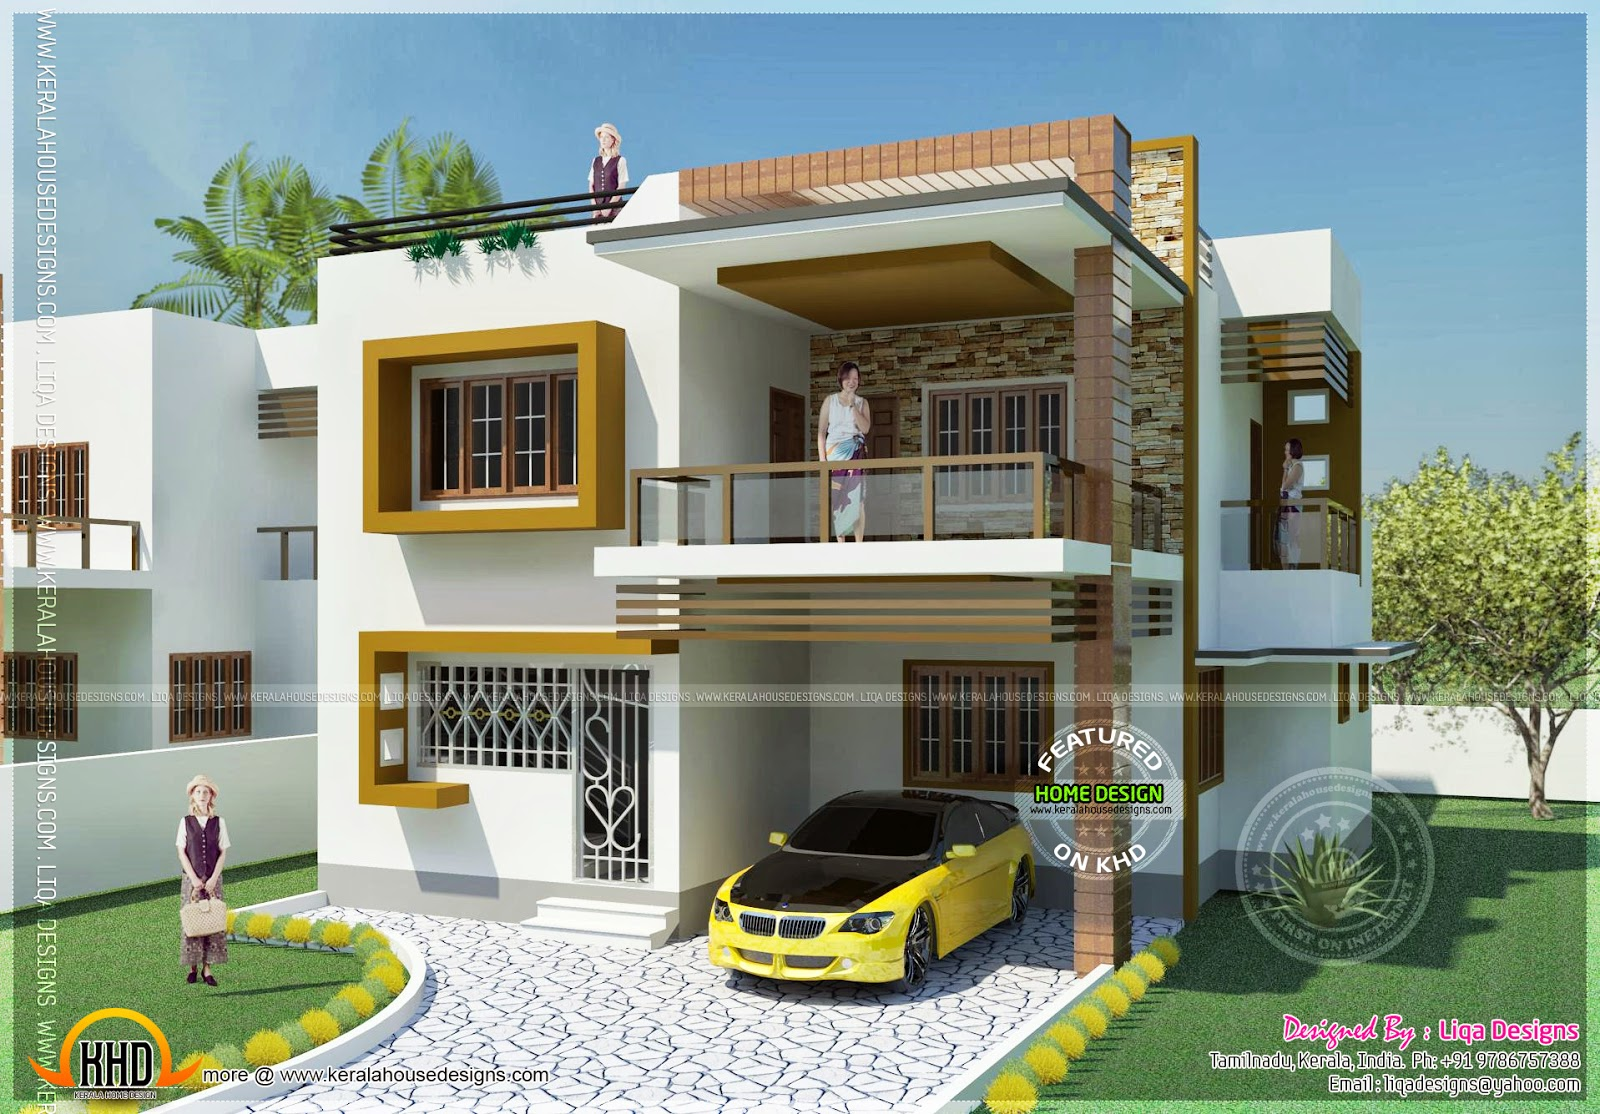 Double storied tamilnadu house design kerala home design Indian house structure design